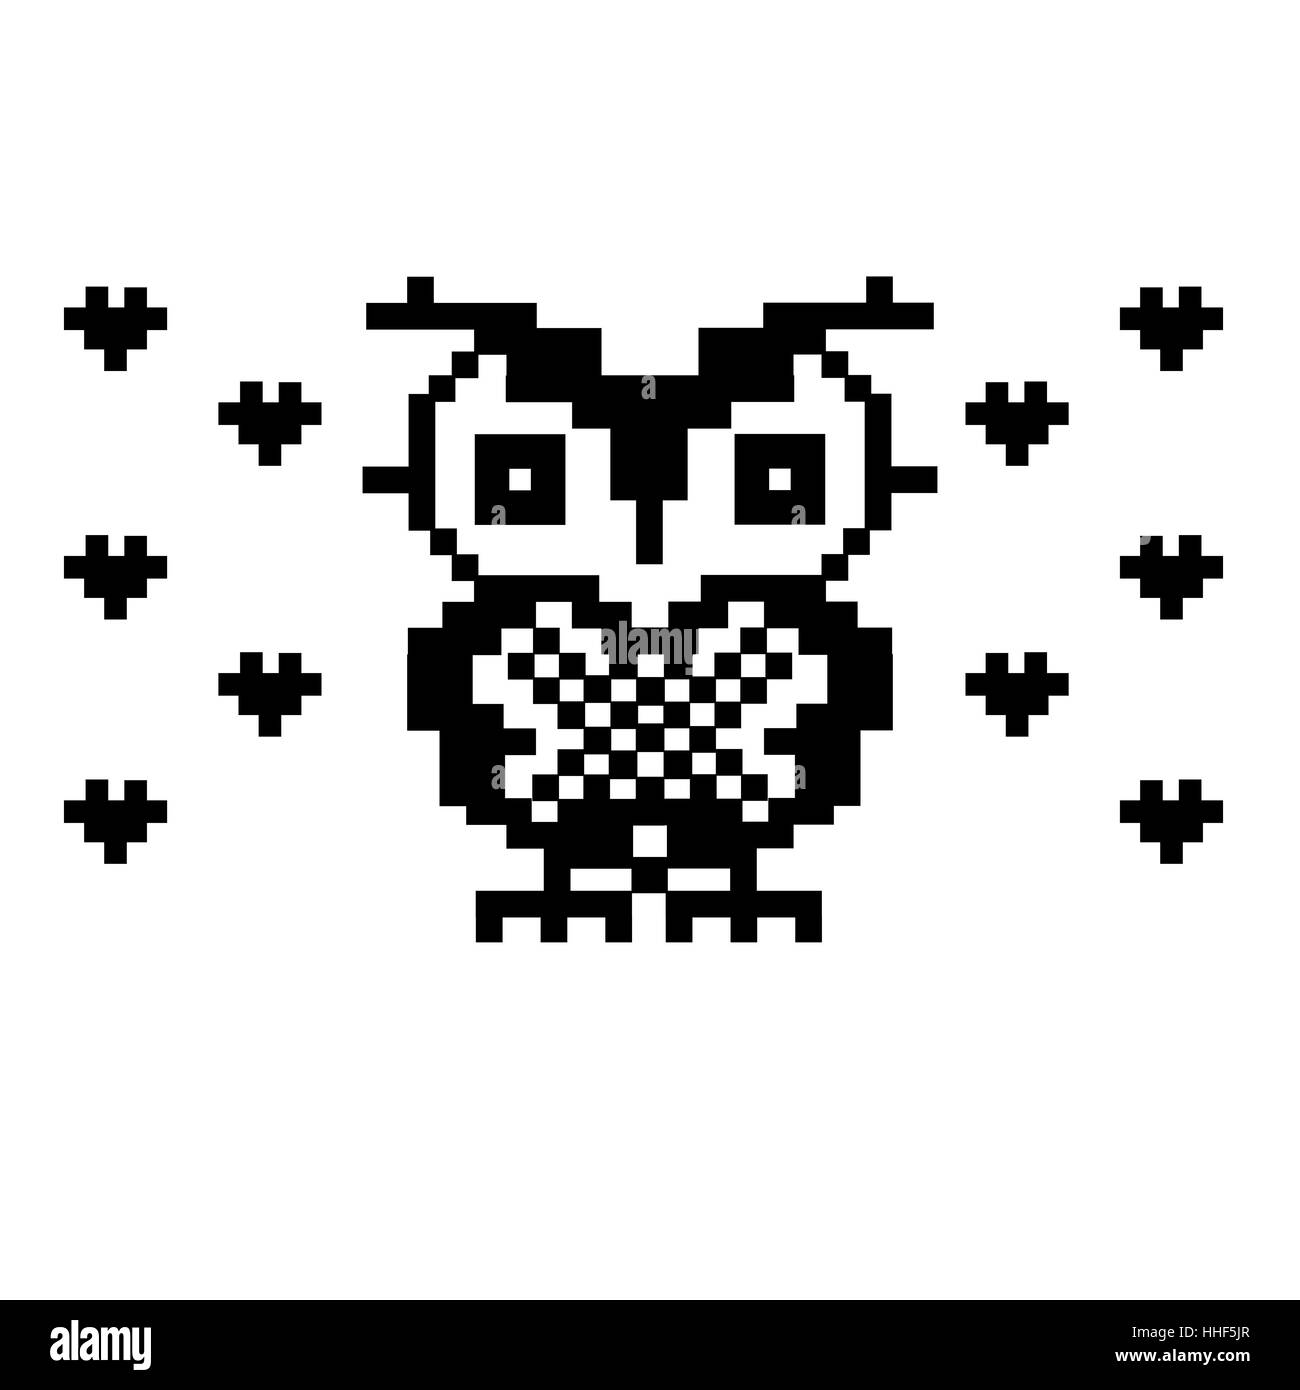 Pixel Art Black And White Stock Photos Images Alamy